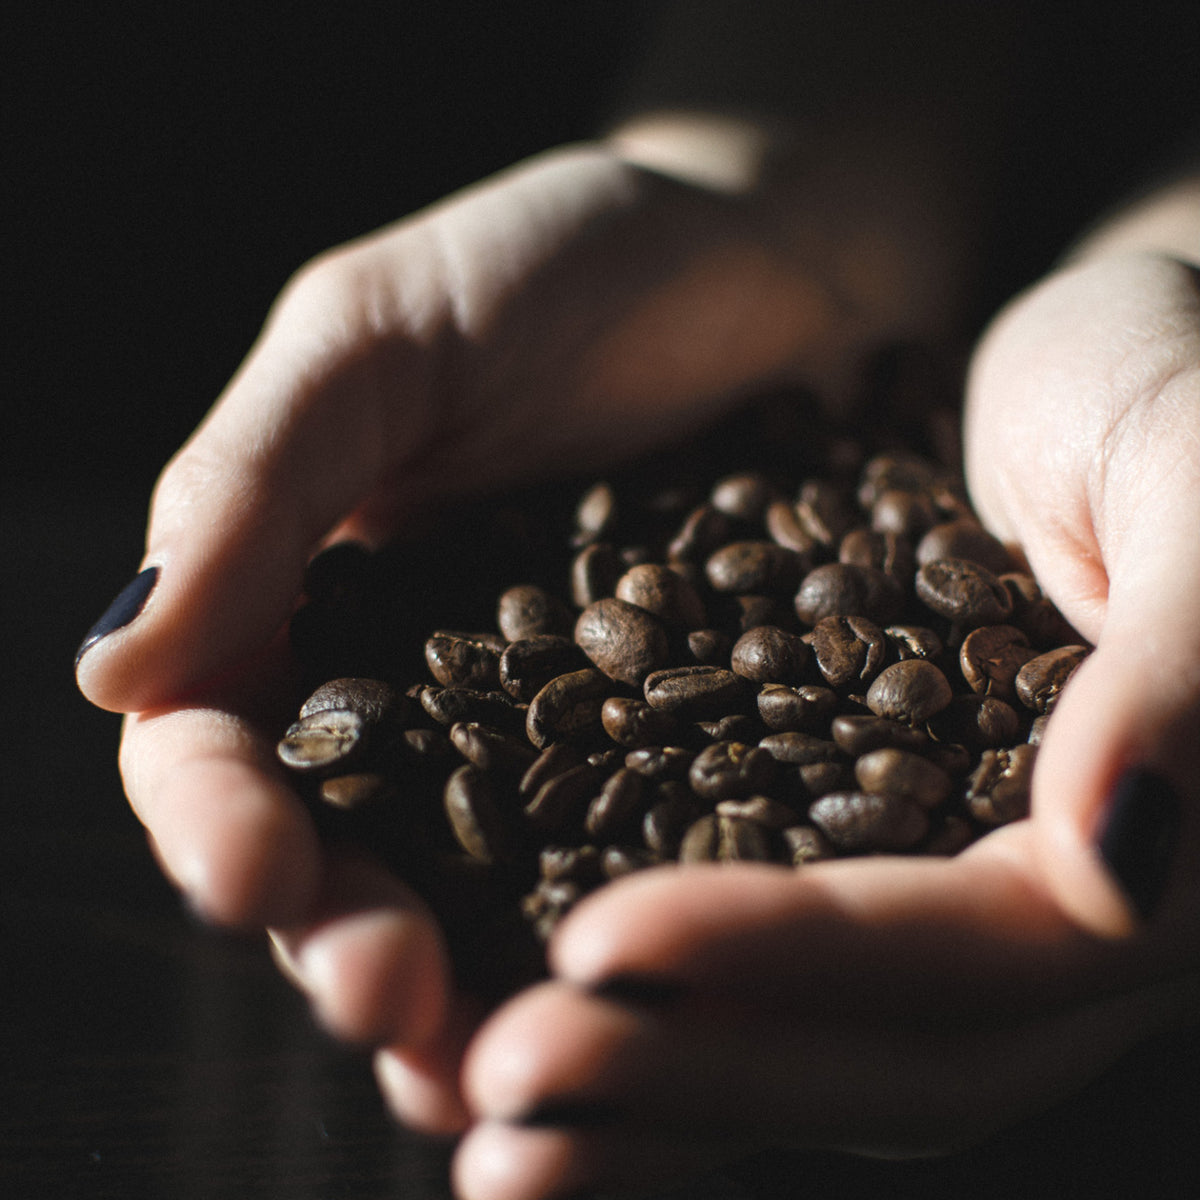 The effect of coffee on energy, sleep and mood